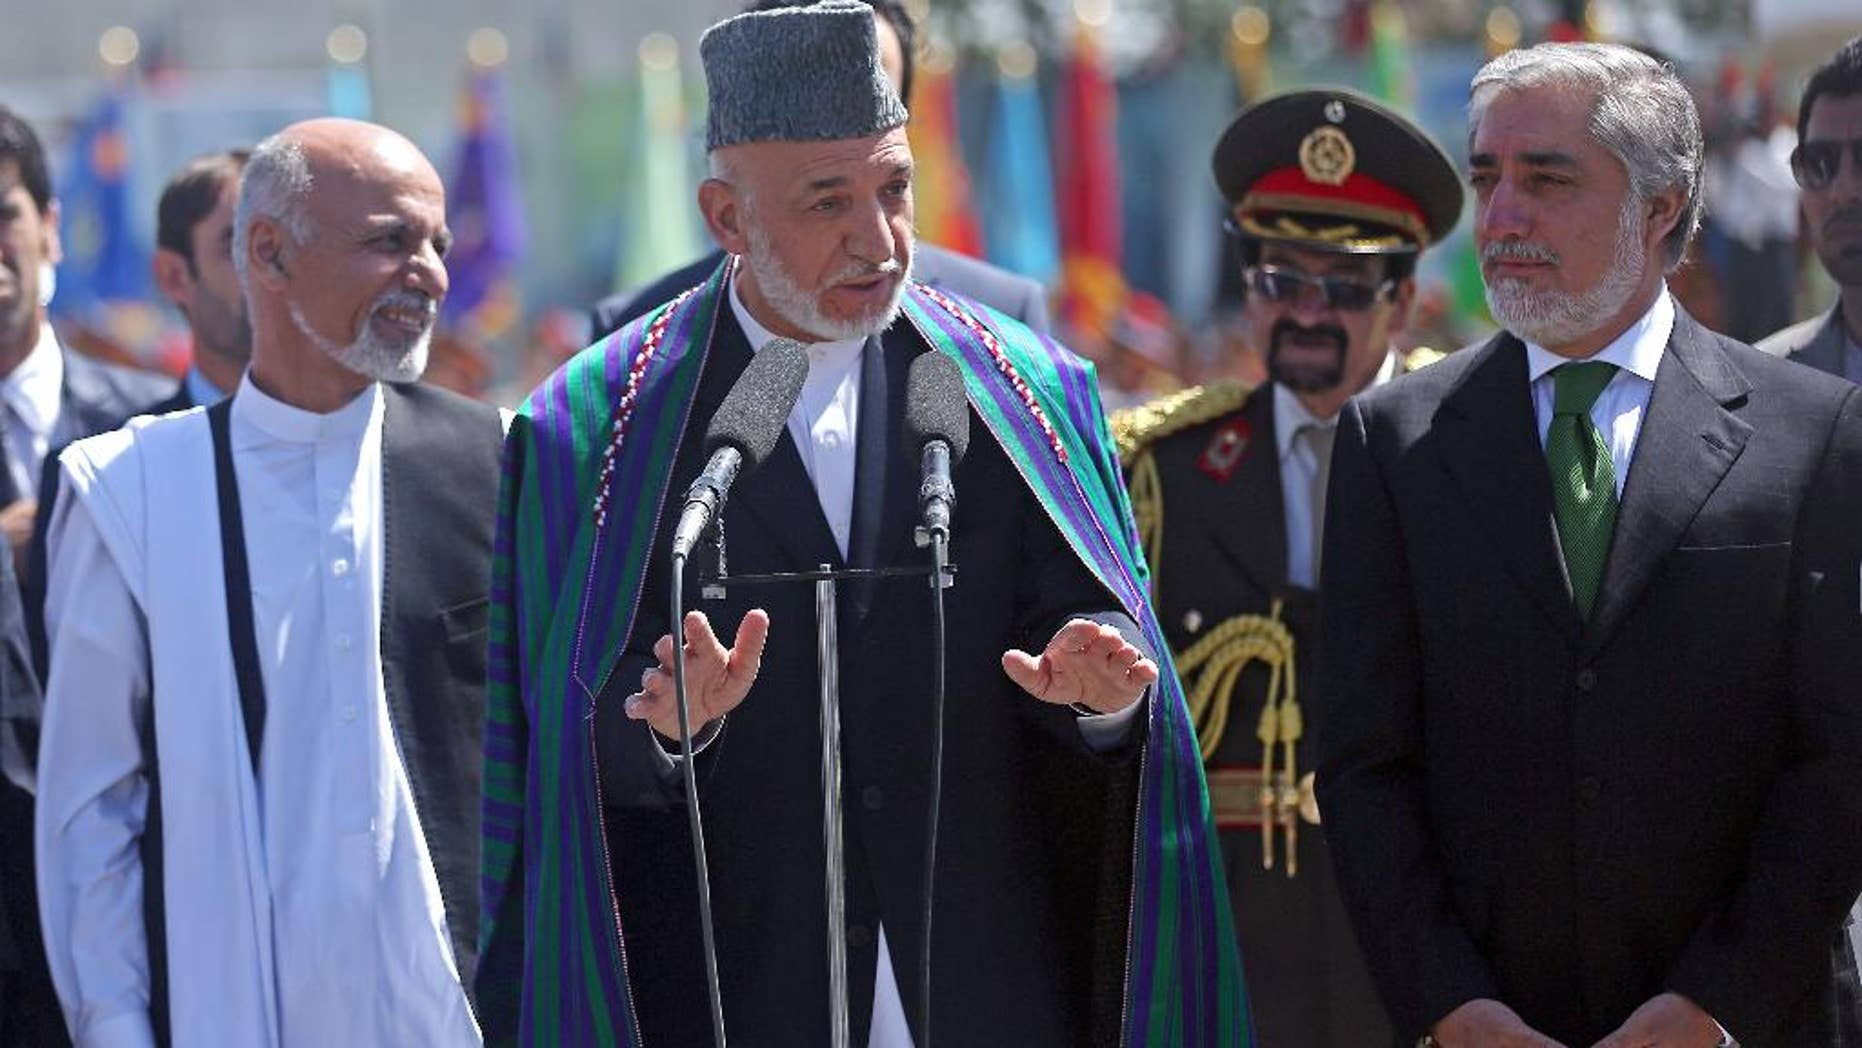 Afghan President Hamid Karzai, center, speaks in  front of local and international media representatives as presidential candidates Abdullah Abdullah, right, and Ashraf Ghani Ahmadzai, left , listen during the Independence Day ceremony in Kabul, Afghanistan, Tuesday, Aug. 19, 2014. King Amanullah won the country's independency from Britain in 1919. (AP Photo/Massoud Hossaini)